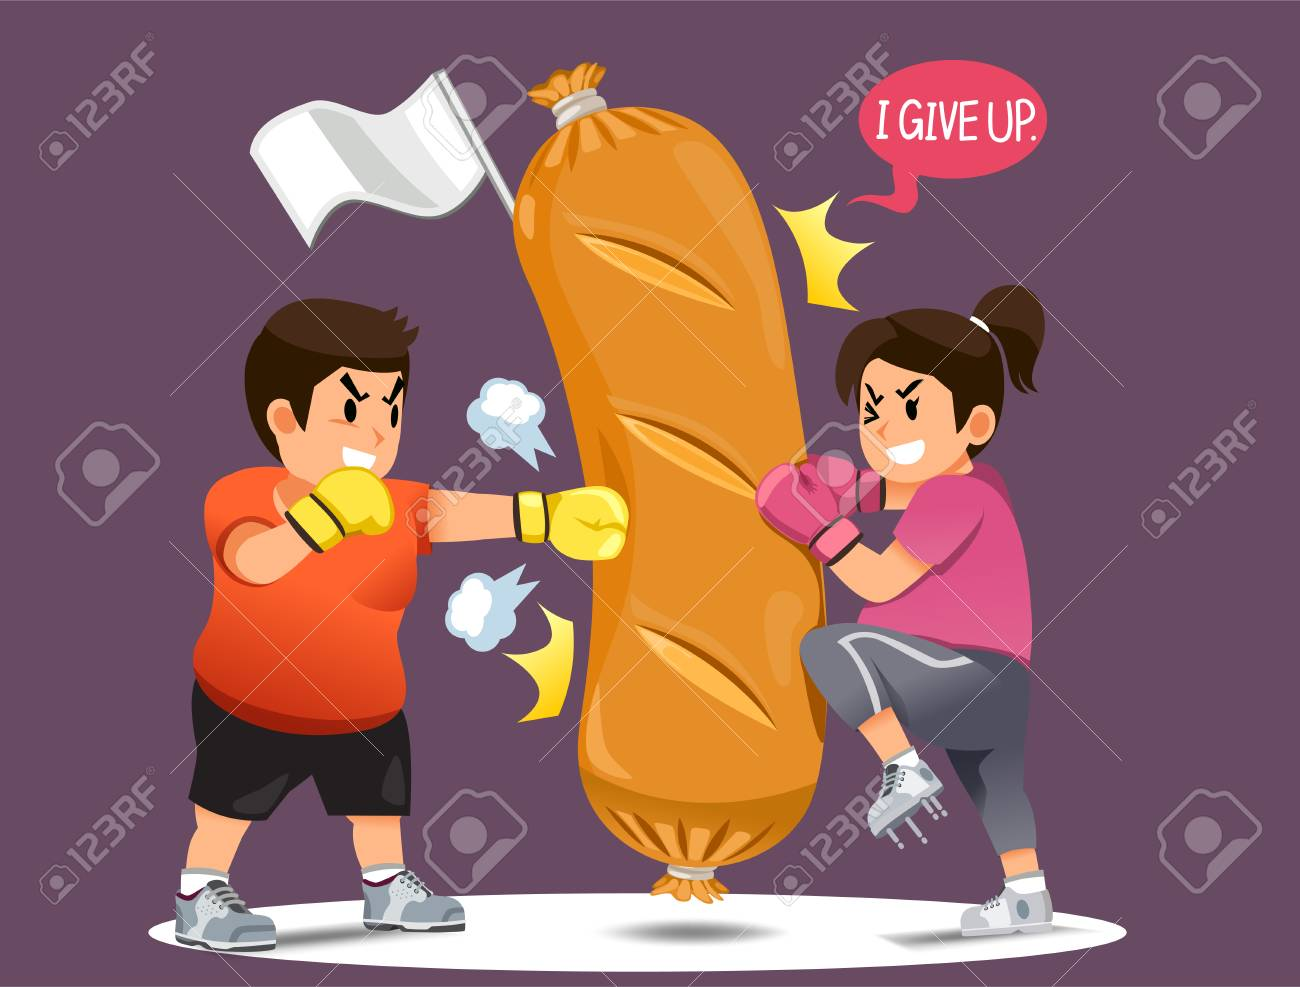 People overcoming the desire to eat junk food.Fight for weight loss. Winning your mind for a good shape. win A fast food in funny concept. - 104887949